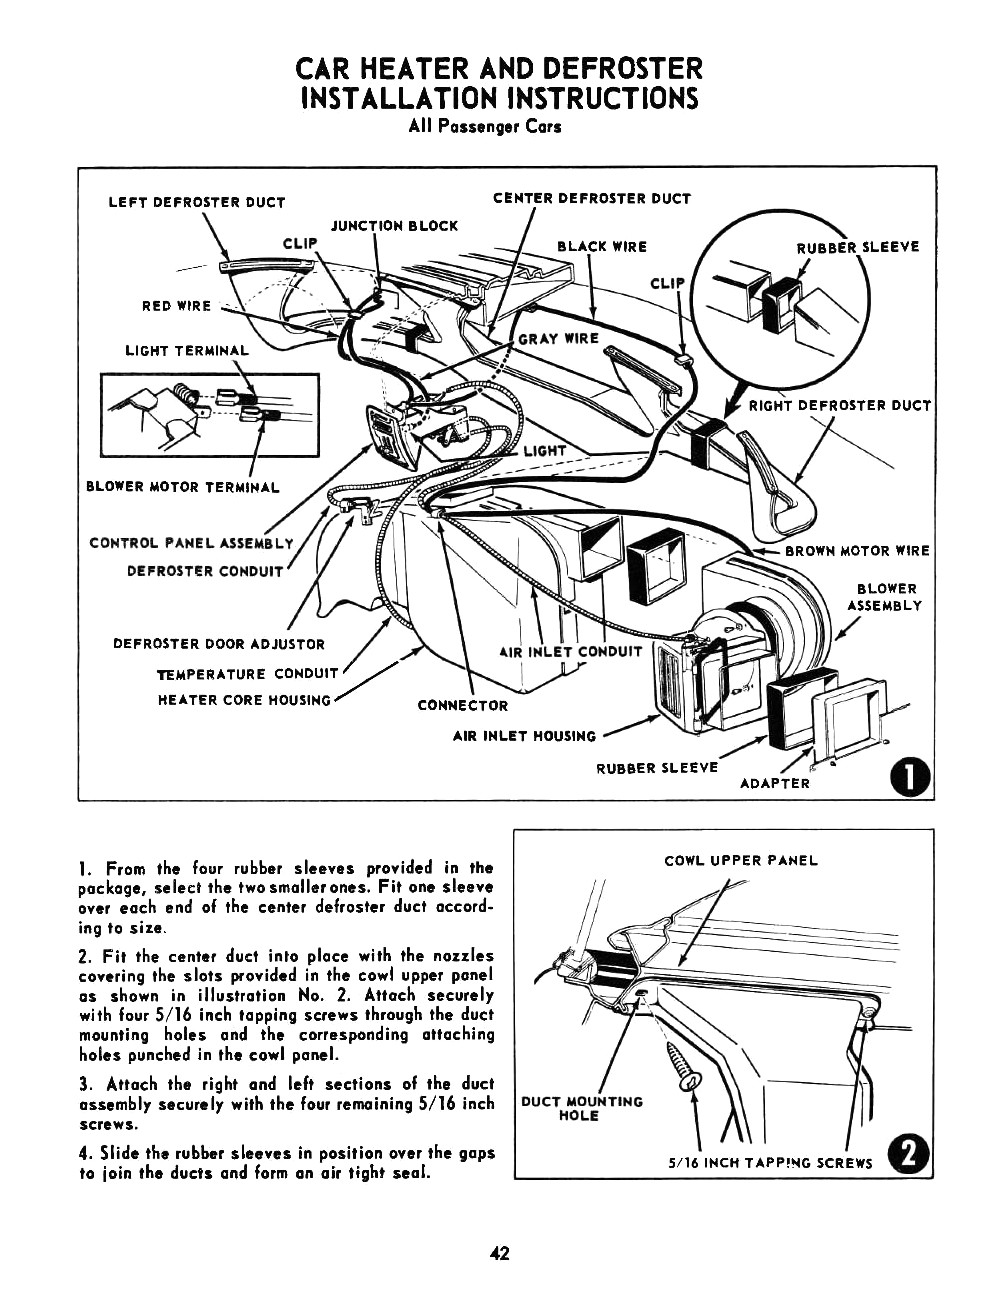 1955 Chevrolet Passenger Car Accessories Installation